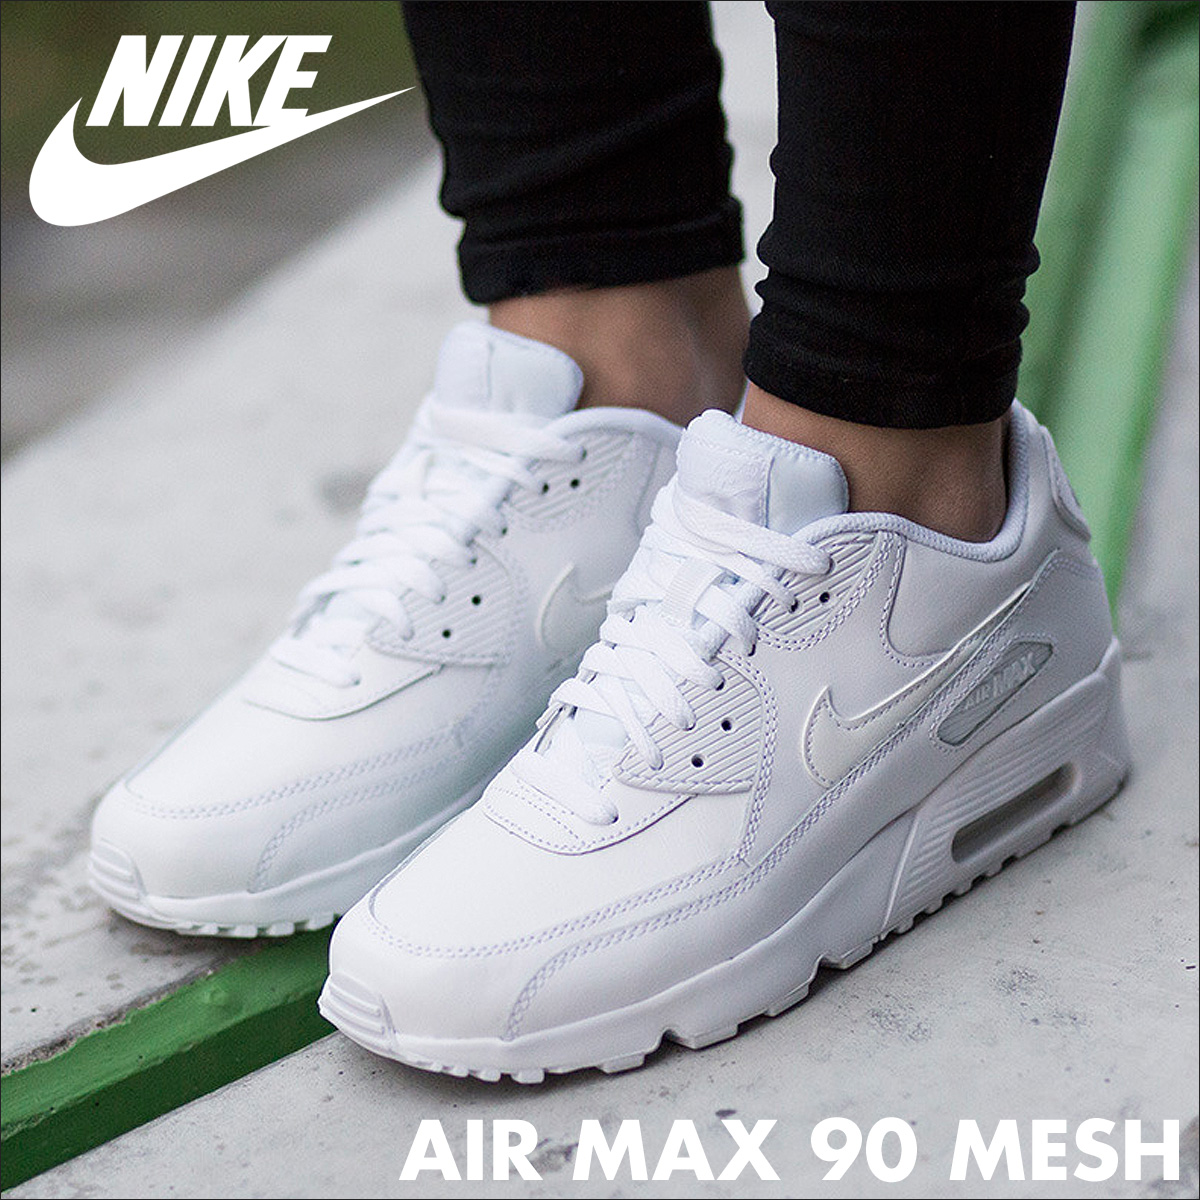 new concept 503f0 43089 Nike NIKE Air Max 90 Ladys sneakers AIR MAX 90 MESH GS 833,418-100 shoes  white 624 Shinnyu load